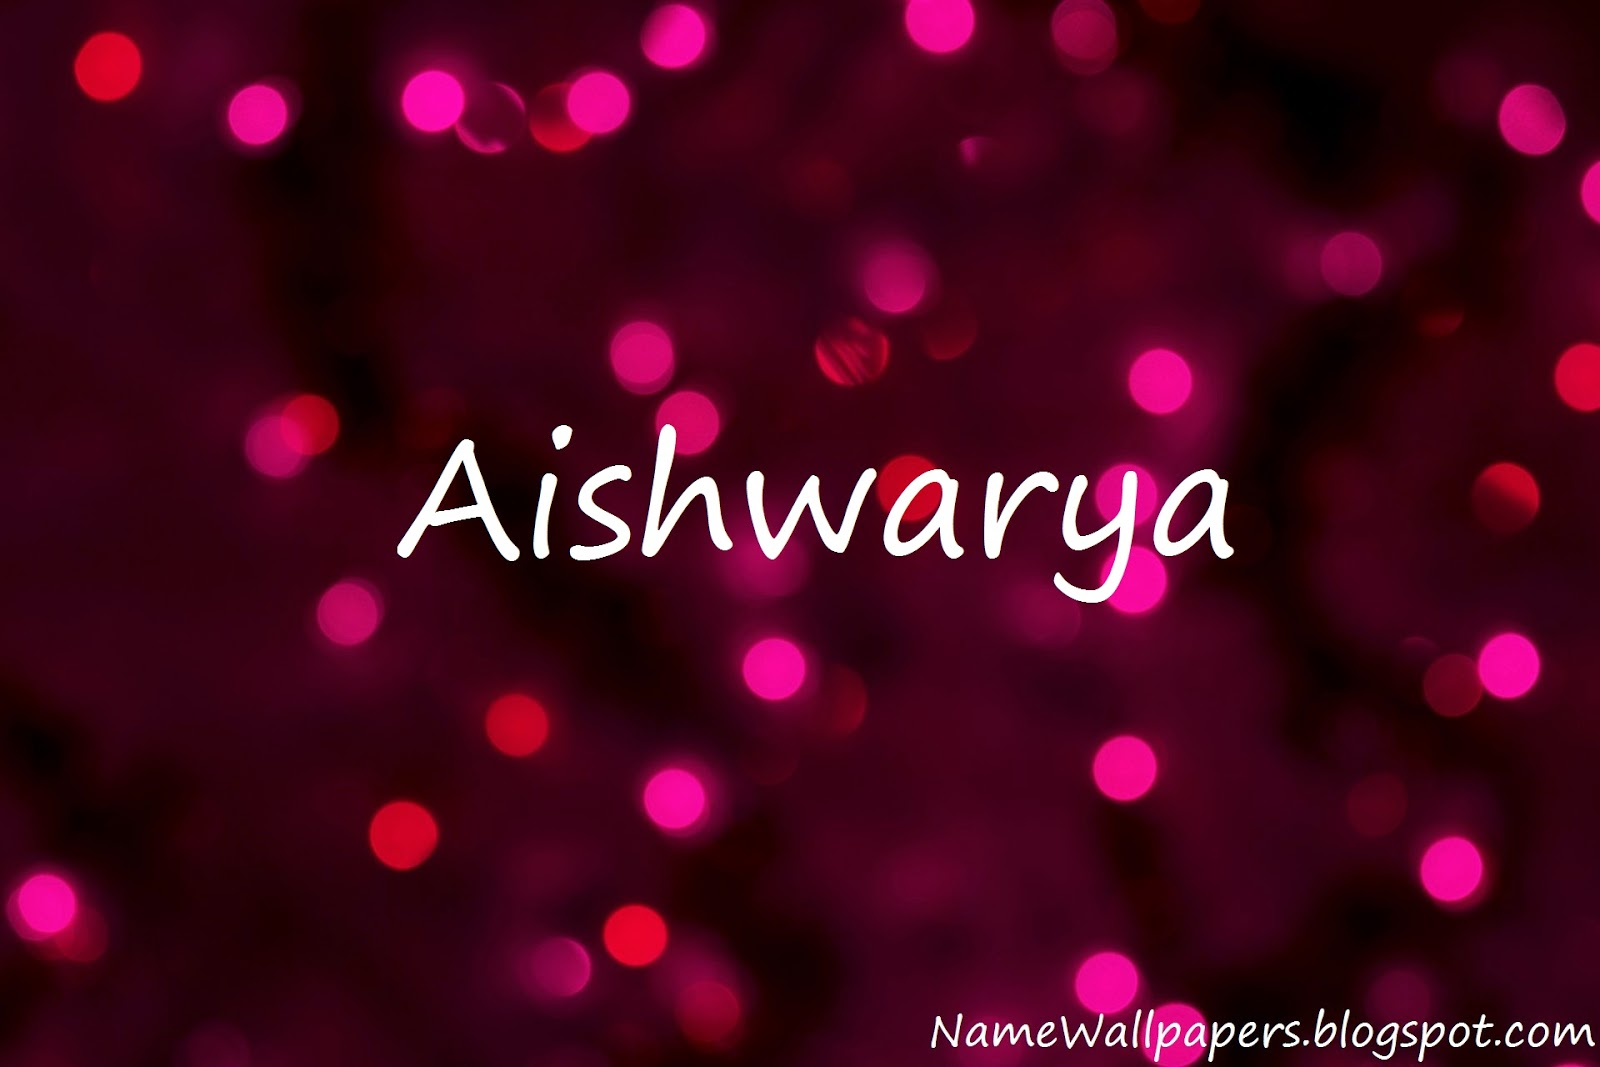 Aishwarya Name Wallpapers Aishwarya Name Wallpaper Urdu Name Meaning Name Images Logo Signature It is not in the top 1000 names. name wallpaper urdu name meaning name images logo signature